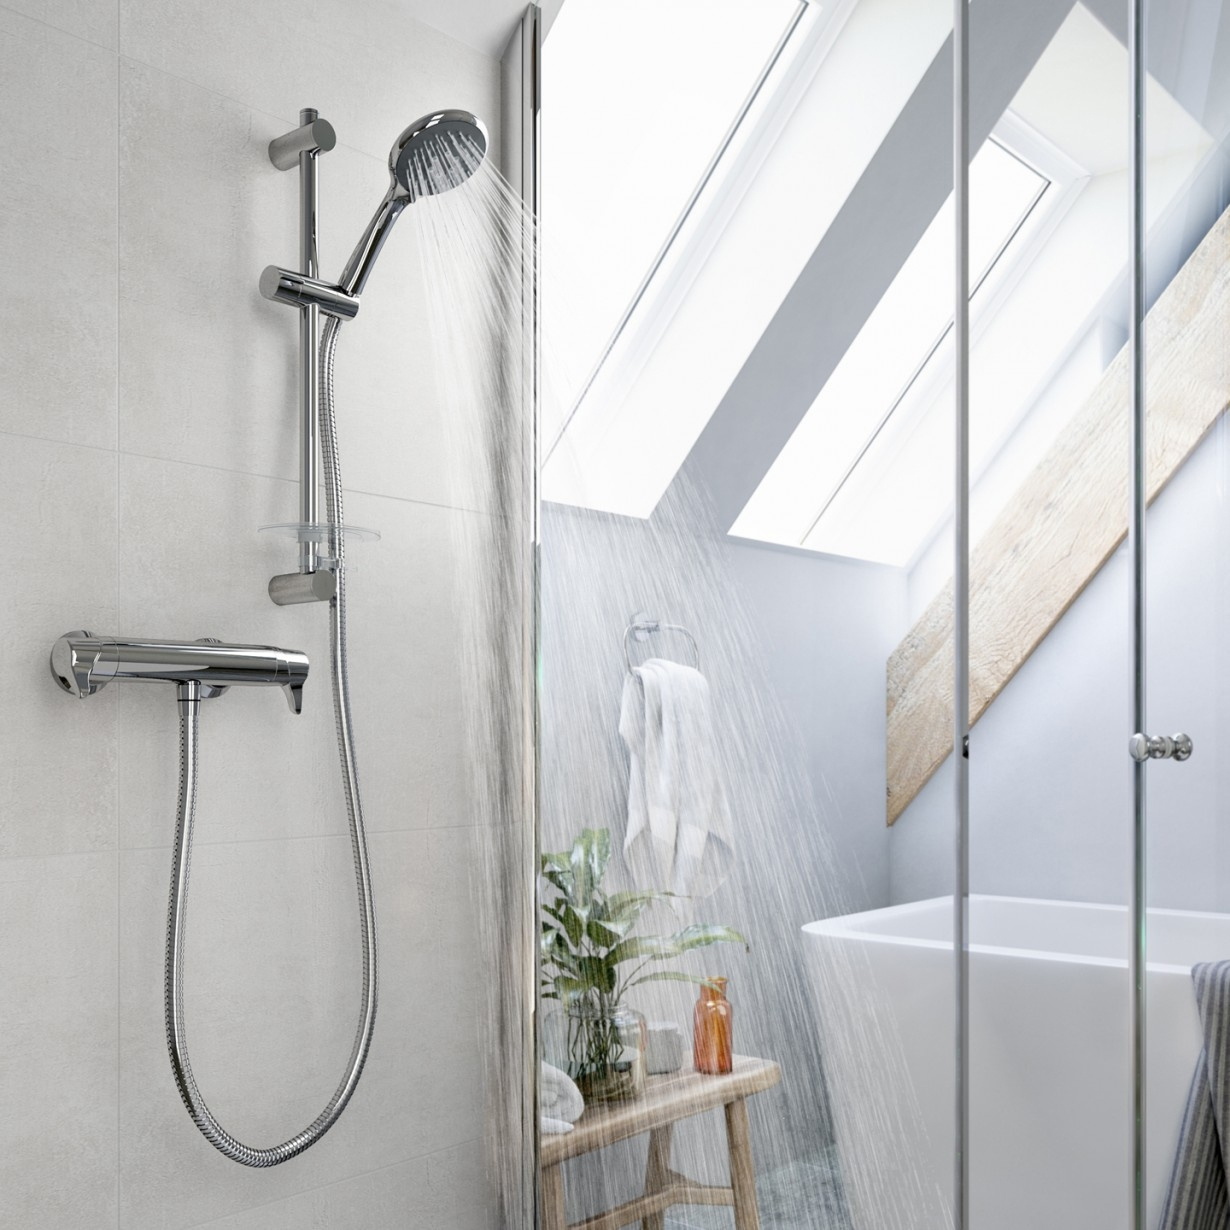 Triton Eden Bar Thermostatic Mixer Shower with Kit and Brackets